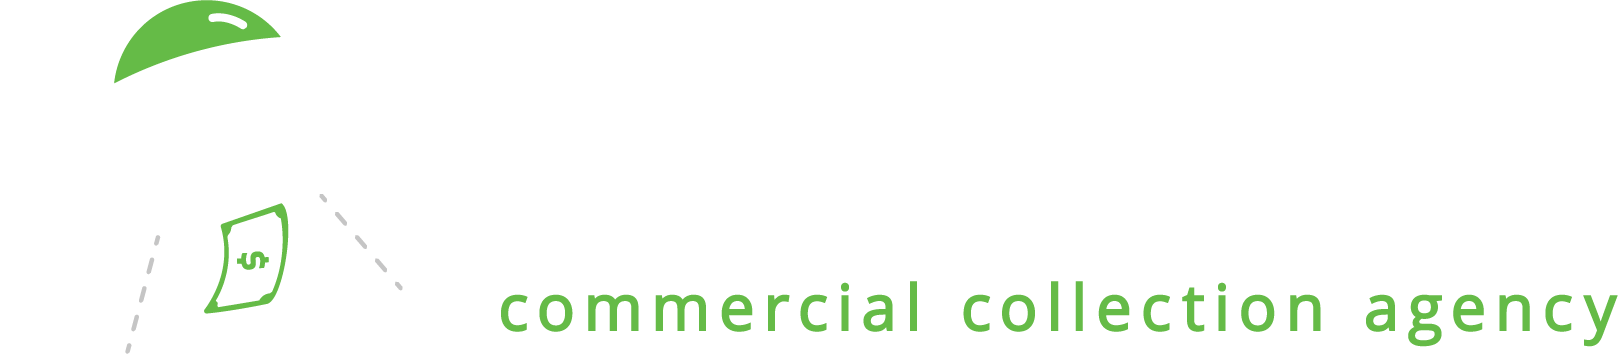 enterprise-recovery_logo_header.png